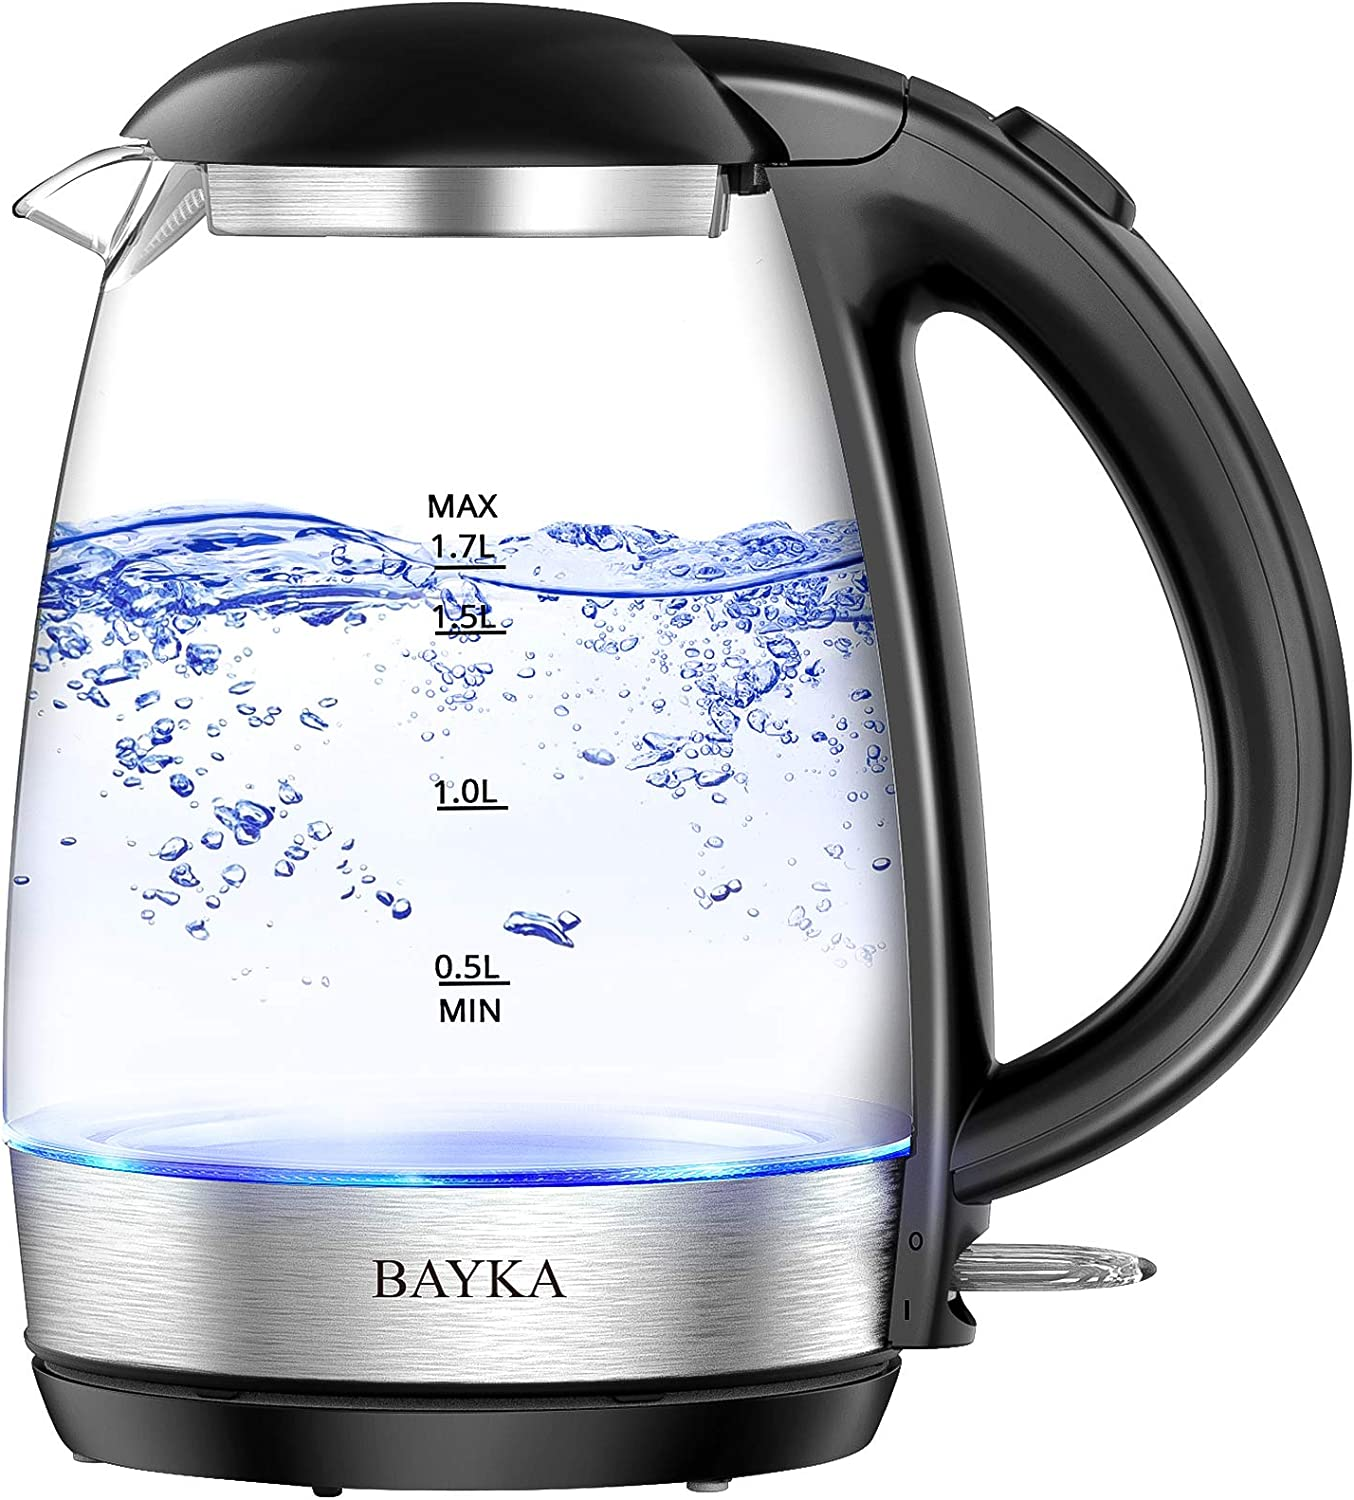 BAYKA Electric Kettle, 1.7L Glass Hot Water Boiler with Auto Shut-Off and Boil-Dry Protection, Cordless Coffee and Tea Kettle with LED Indicator Light